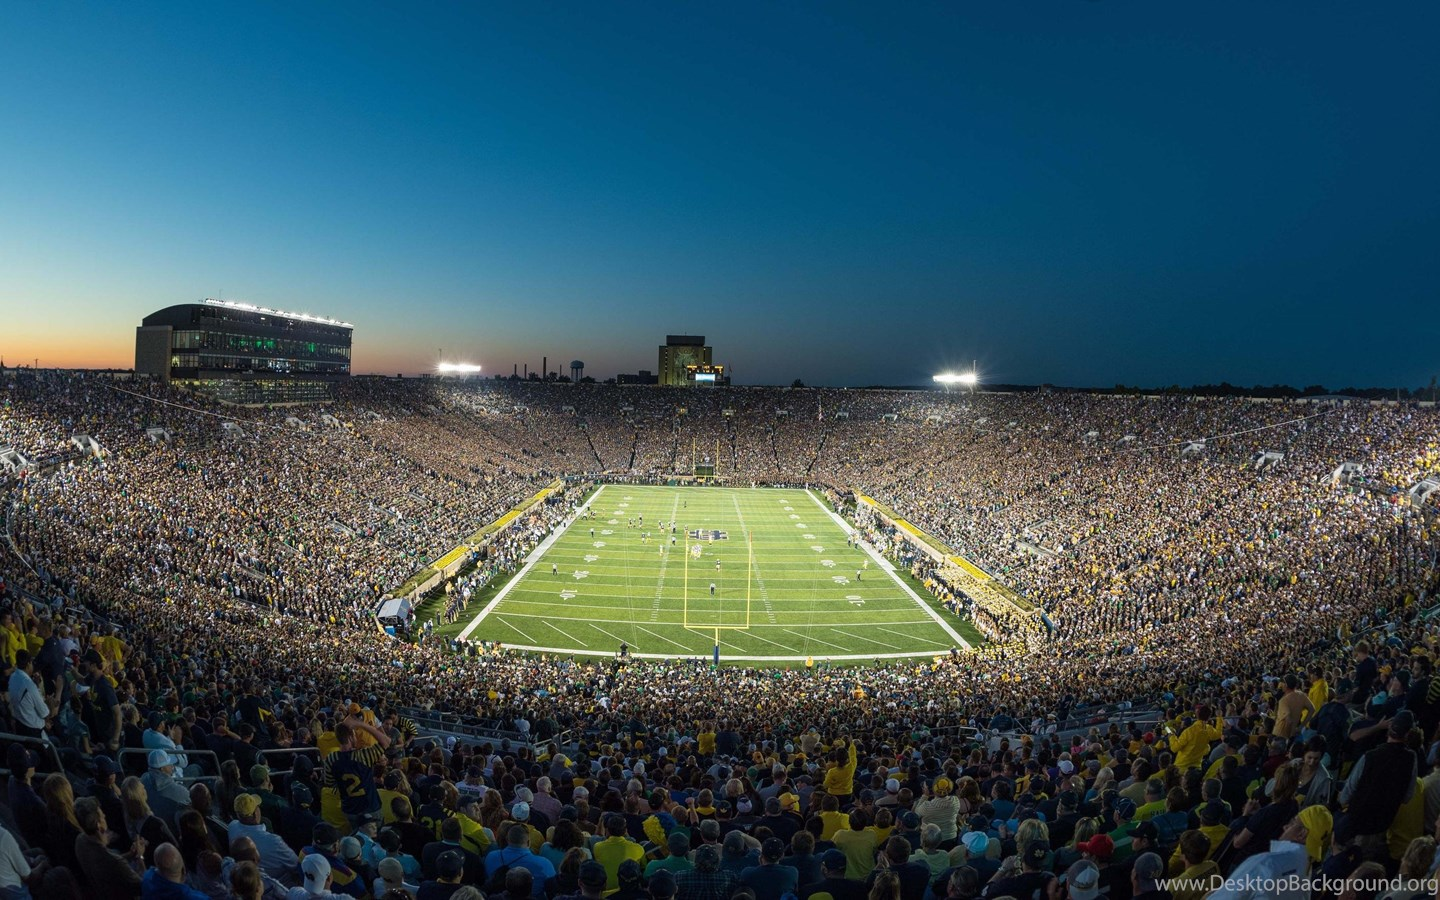 Notre dame football new wallpapers desktop background - Notre dame football wallpaper ...